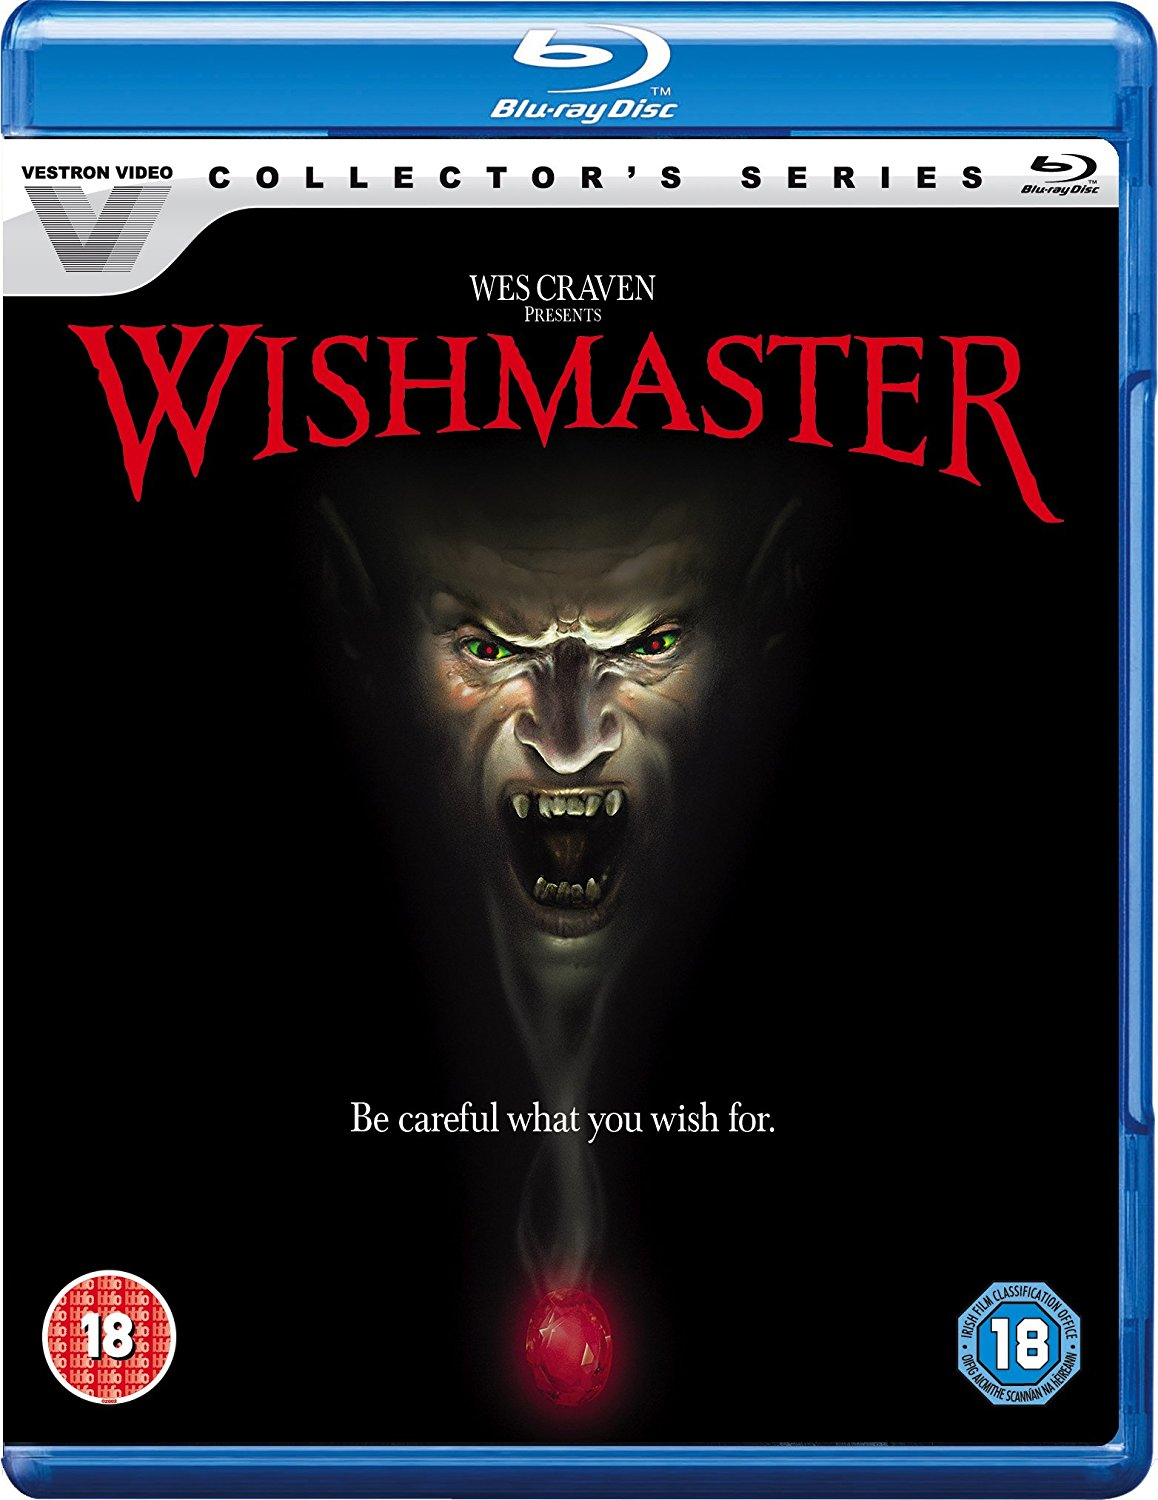 Let's flashback to 1997 when the Men In Black were defending the Earth from Aliens, the Titanic was brought back, Austin Powers was an International Man of Mystery and a certain Djinn was released in the cult classic, Wishmaster.